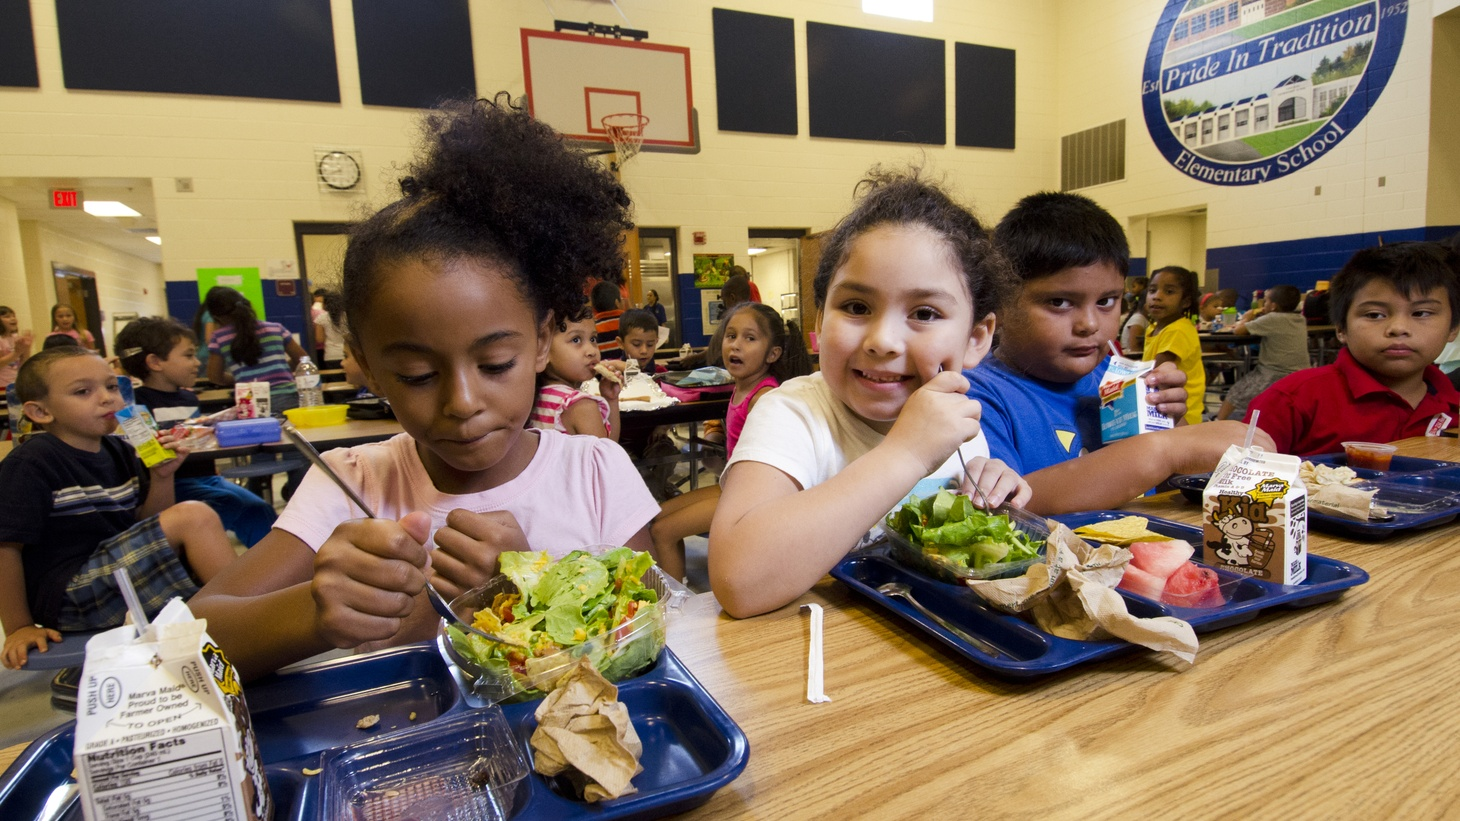 As a teacher, Christine Tran recognized that students were always hungry, and she credits her time in the classroom with helping her understand the complex food program policy.